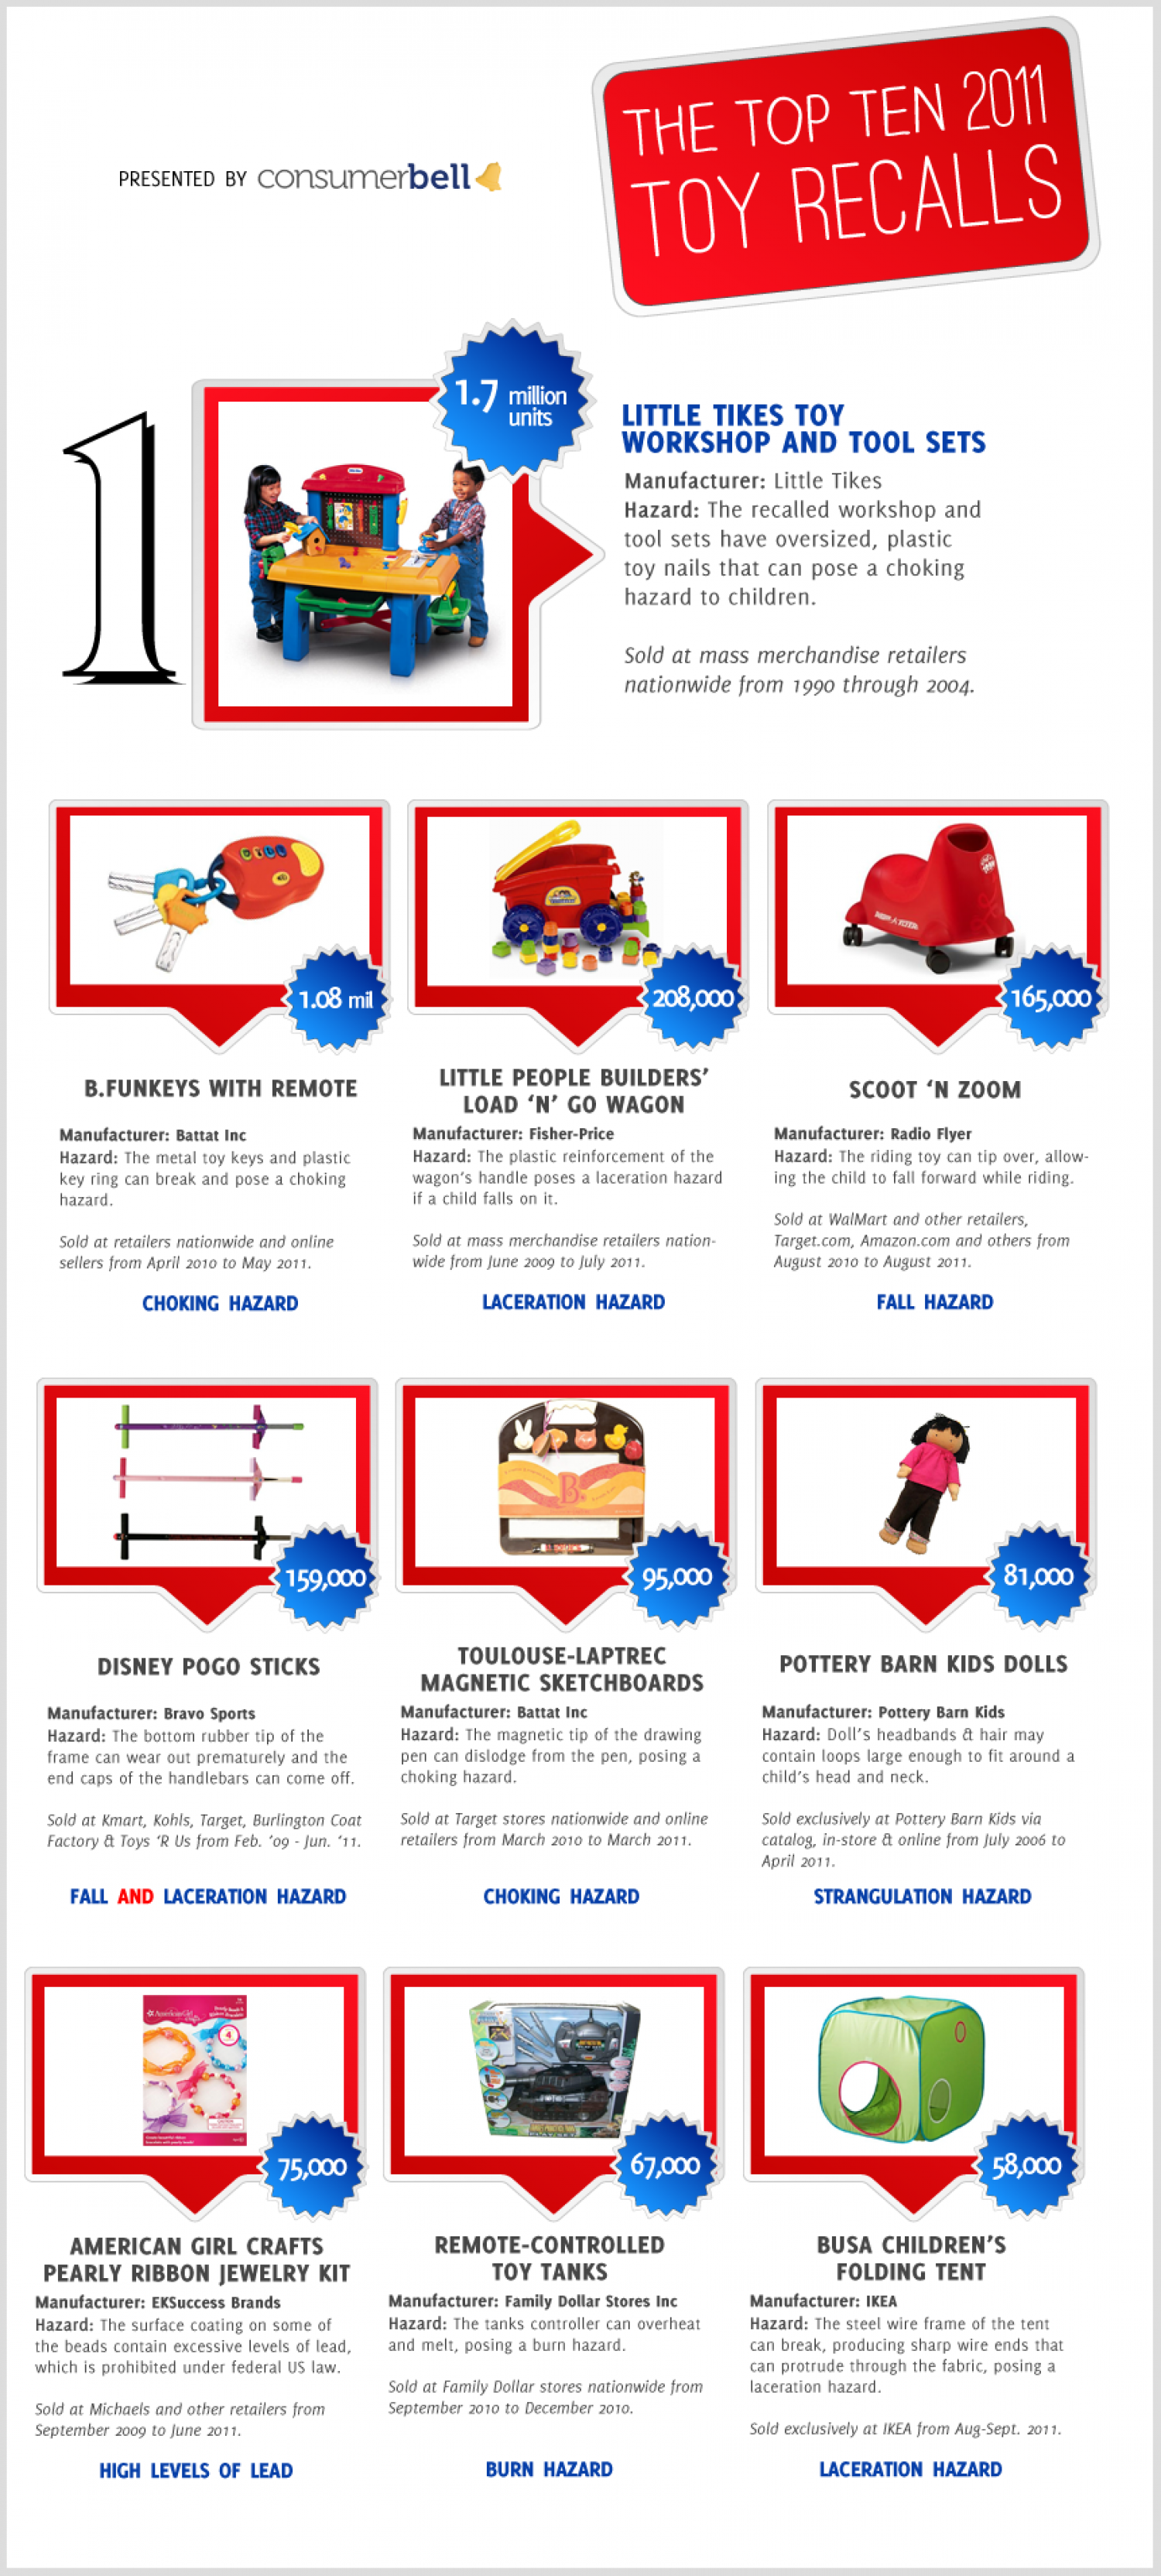 2011 Top Ten Toy Recalls Infographic